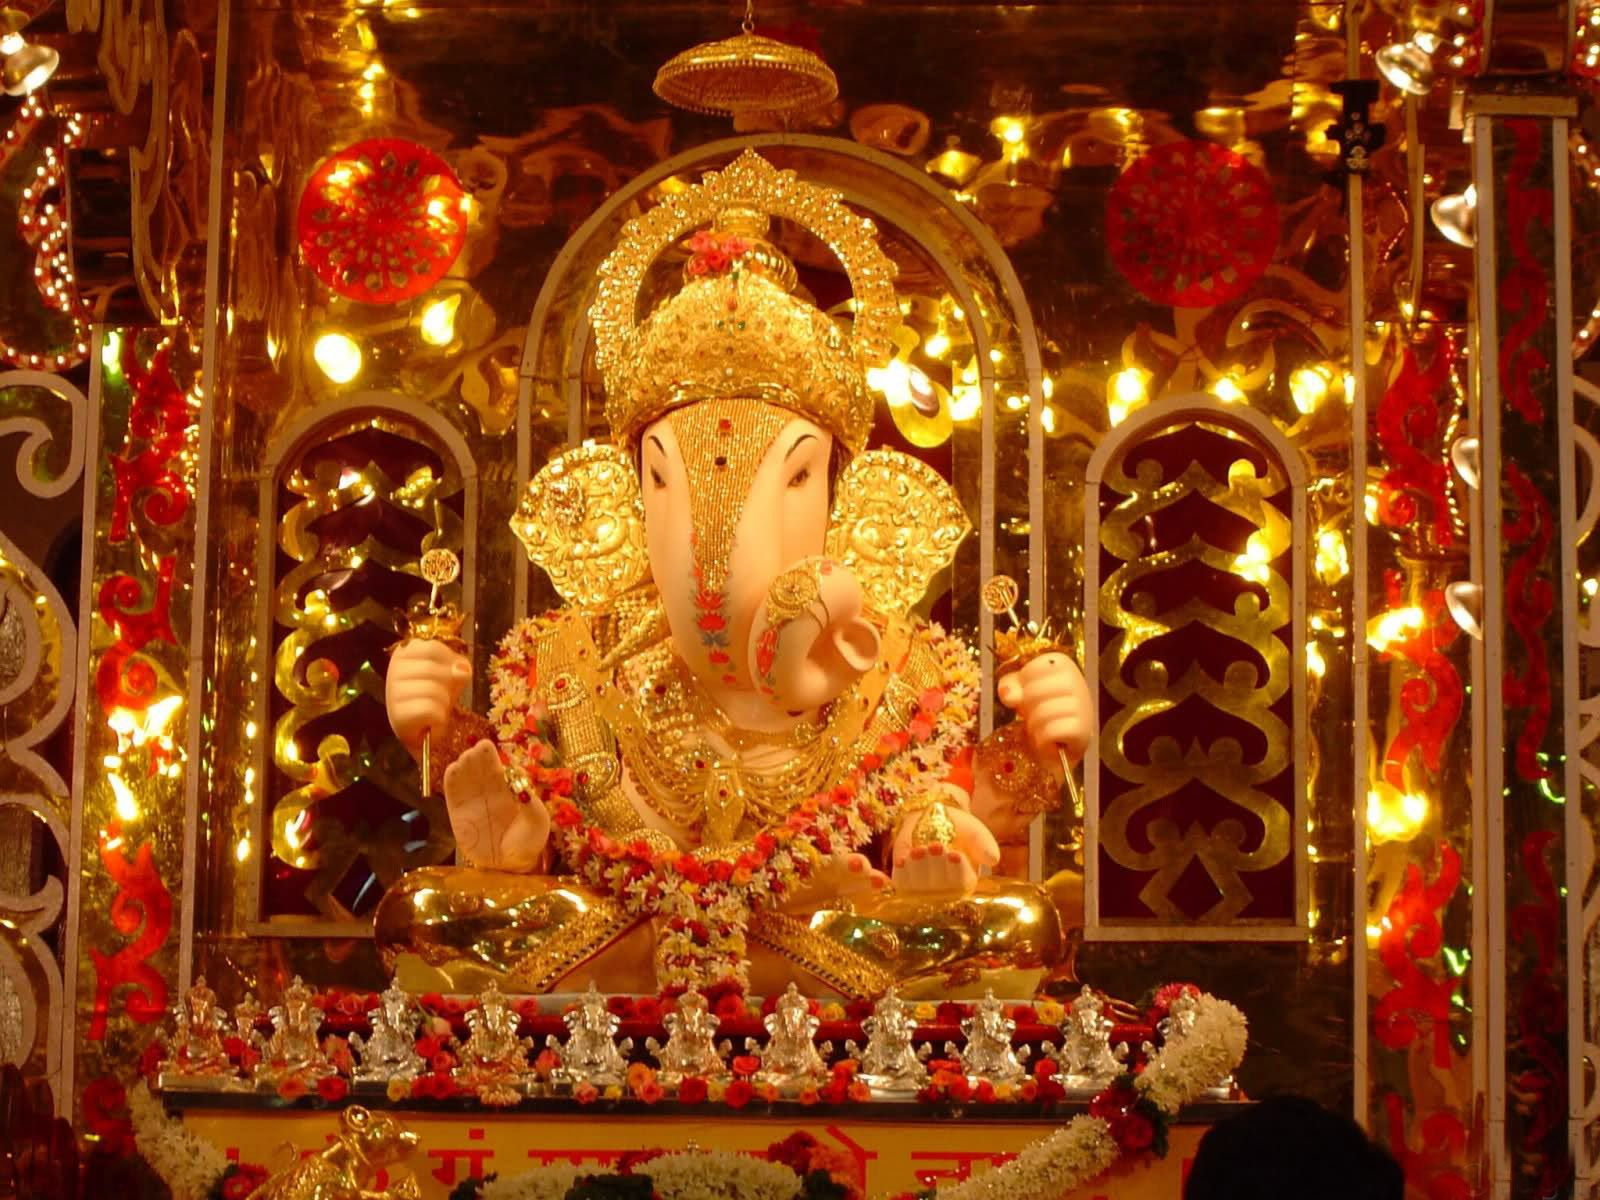 Hd wallpaper ganesh - Hd Wallpaper Ganesh 58